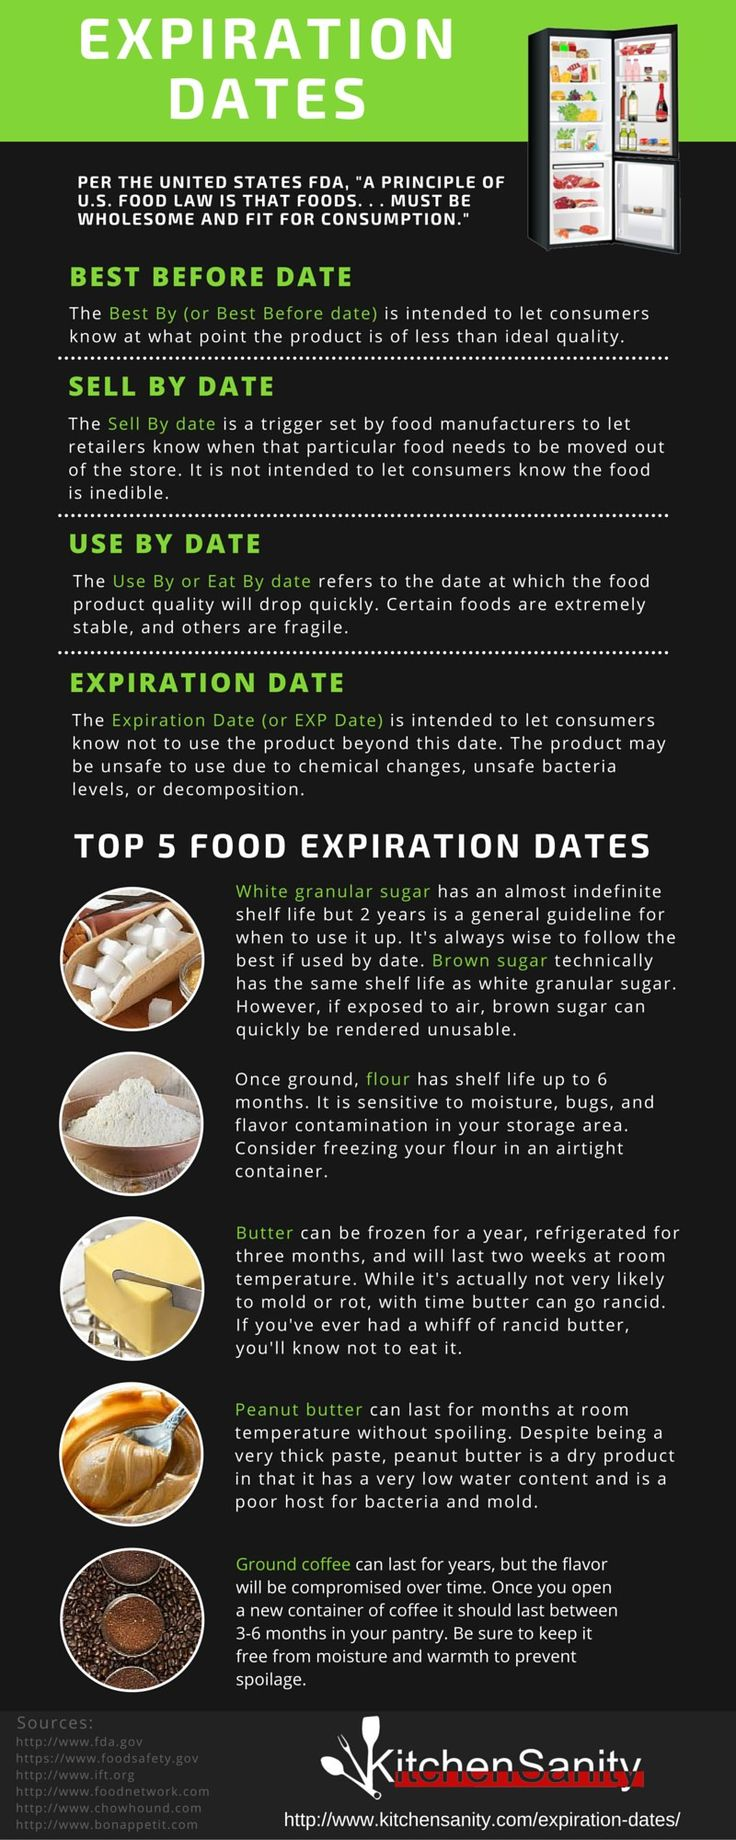 350 best food safety images on pinterest cooking tips households